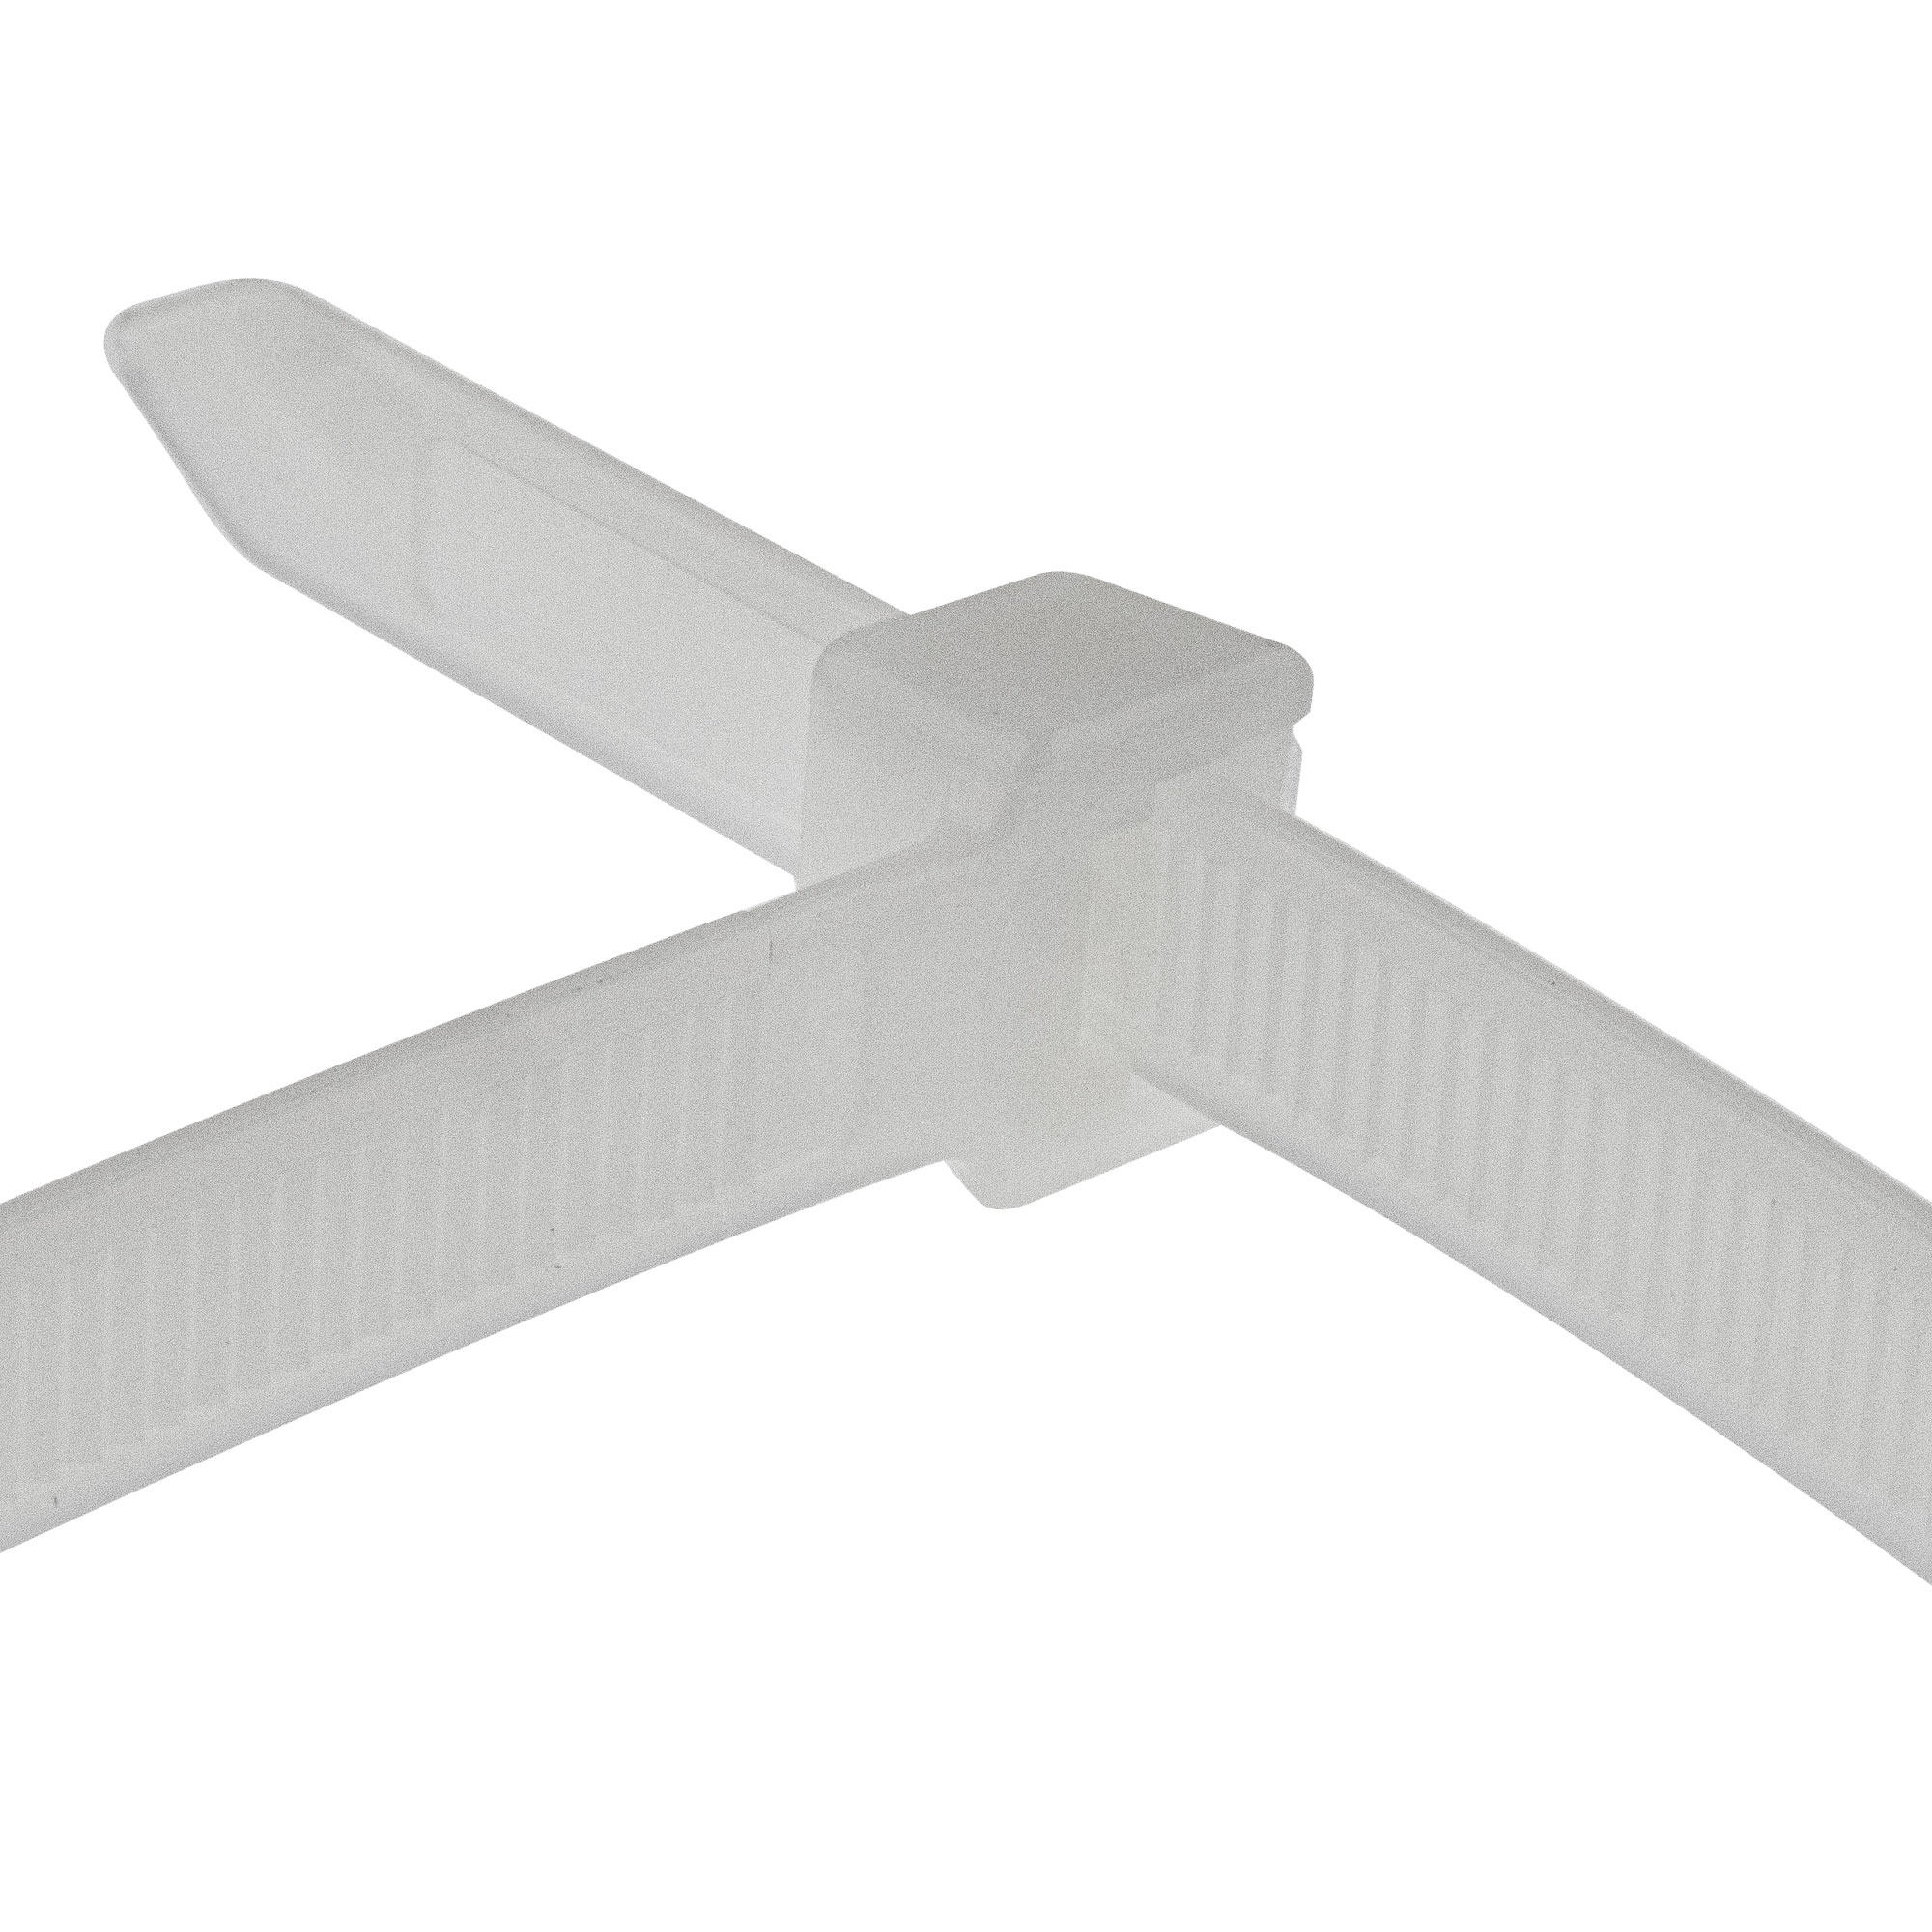 Cable tie self-locking 550 x 9,0mm, white, 100PCS